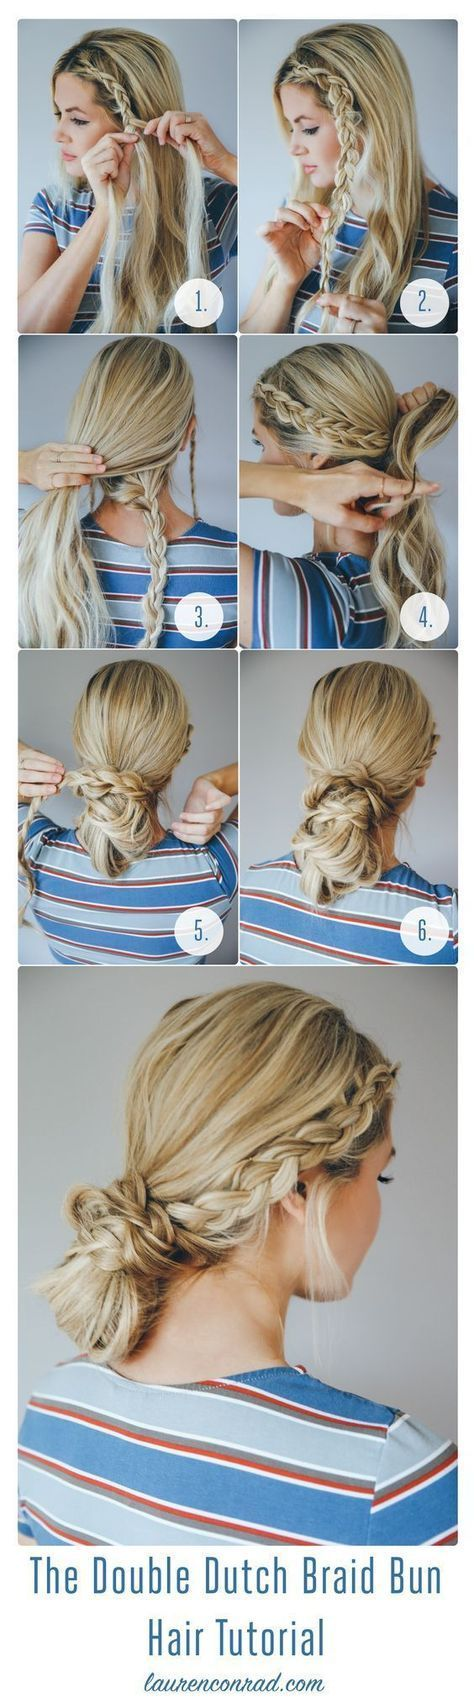 Double side haircut for boys try on hairstyles  african braids bun hairstyle and braid hair